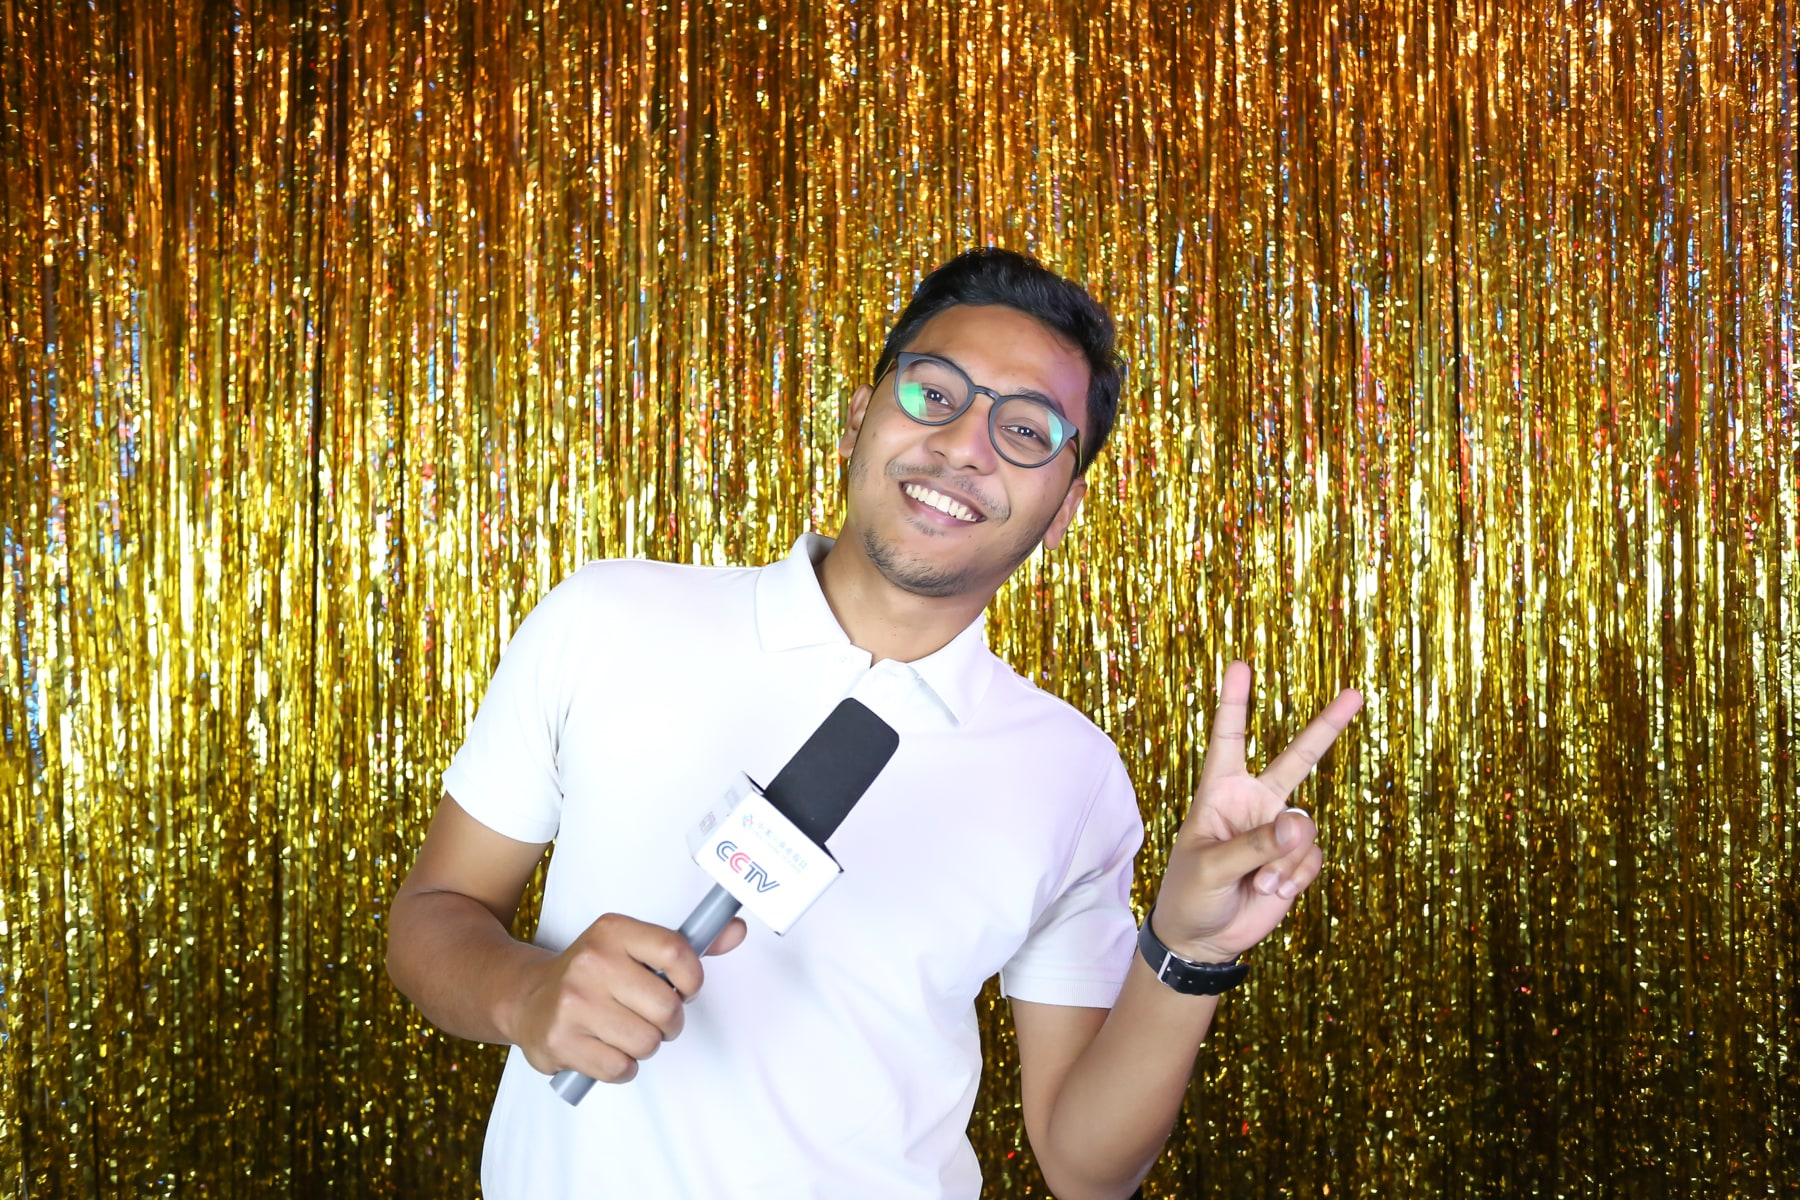 Sushivid+crunch+tagbooth+1